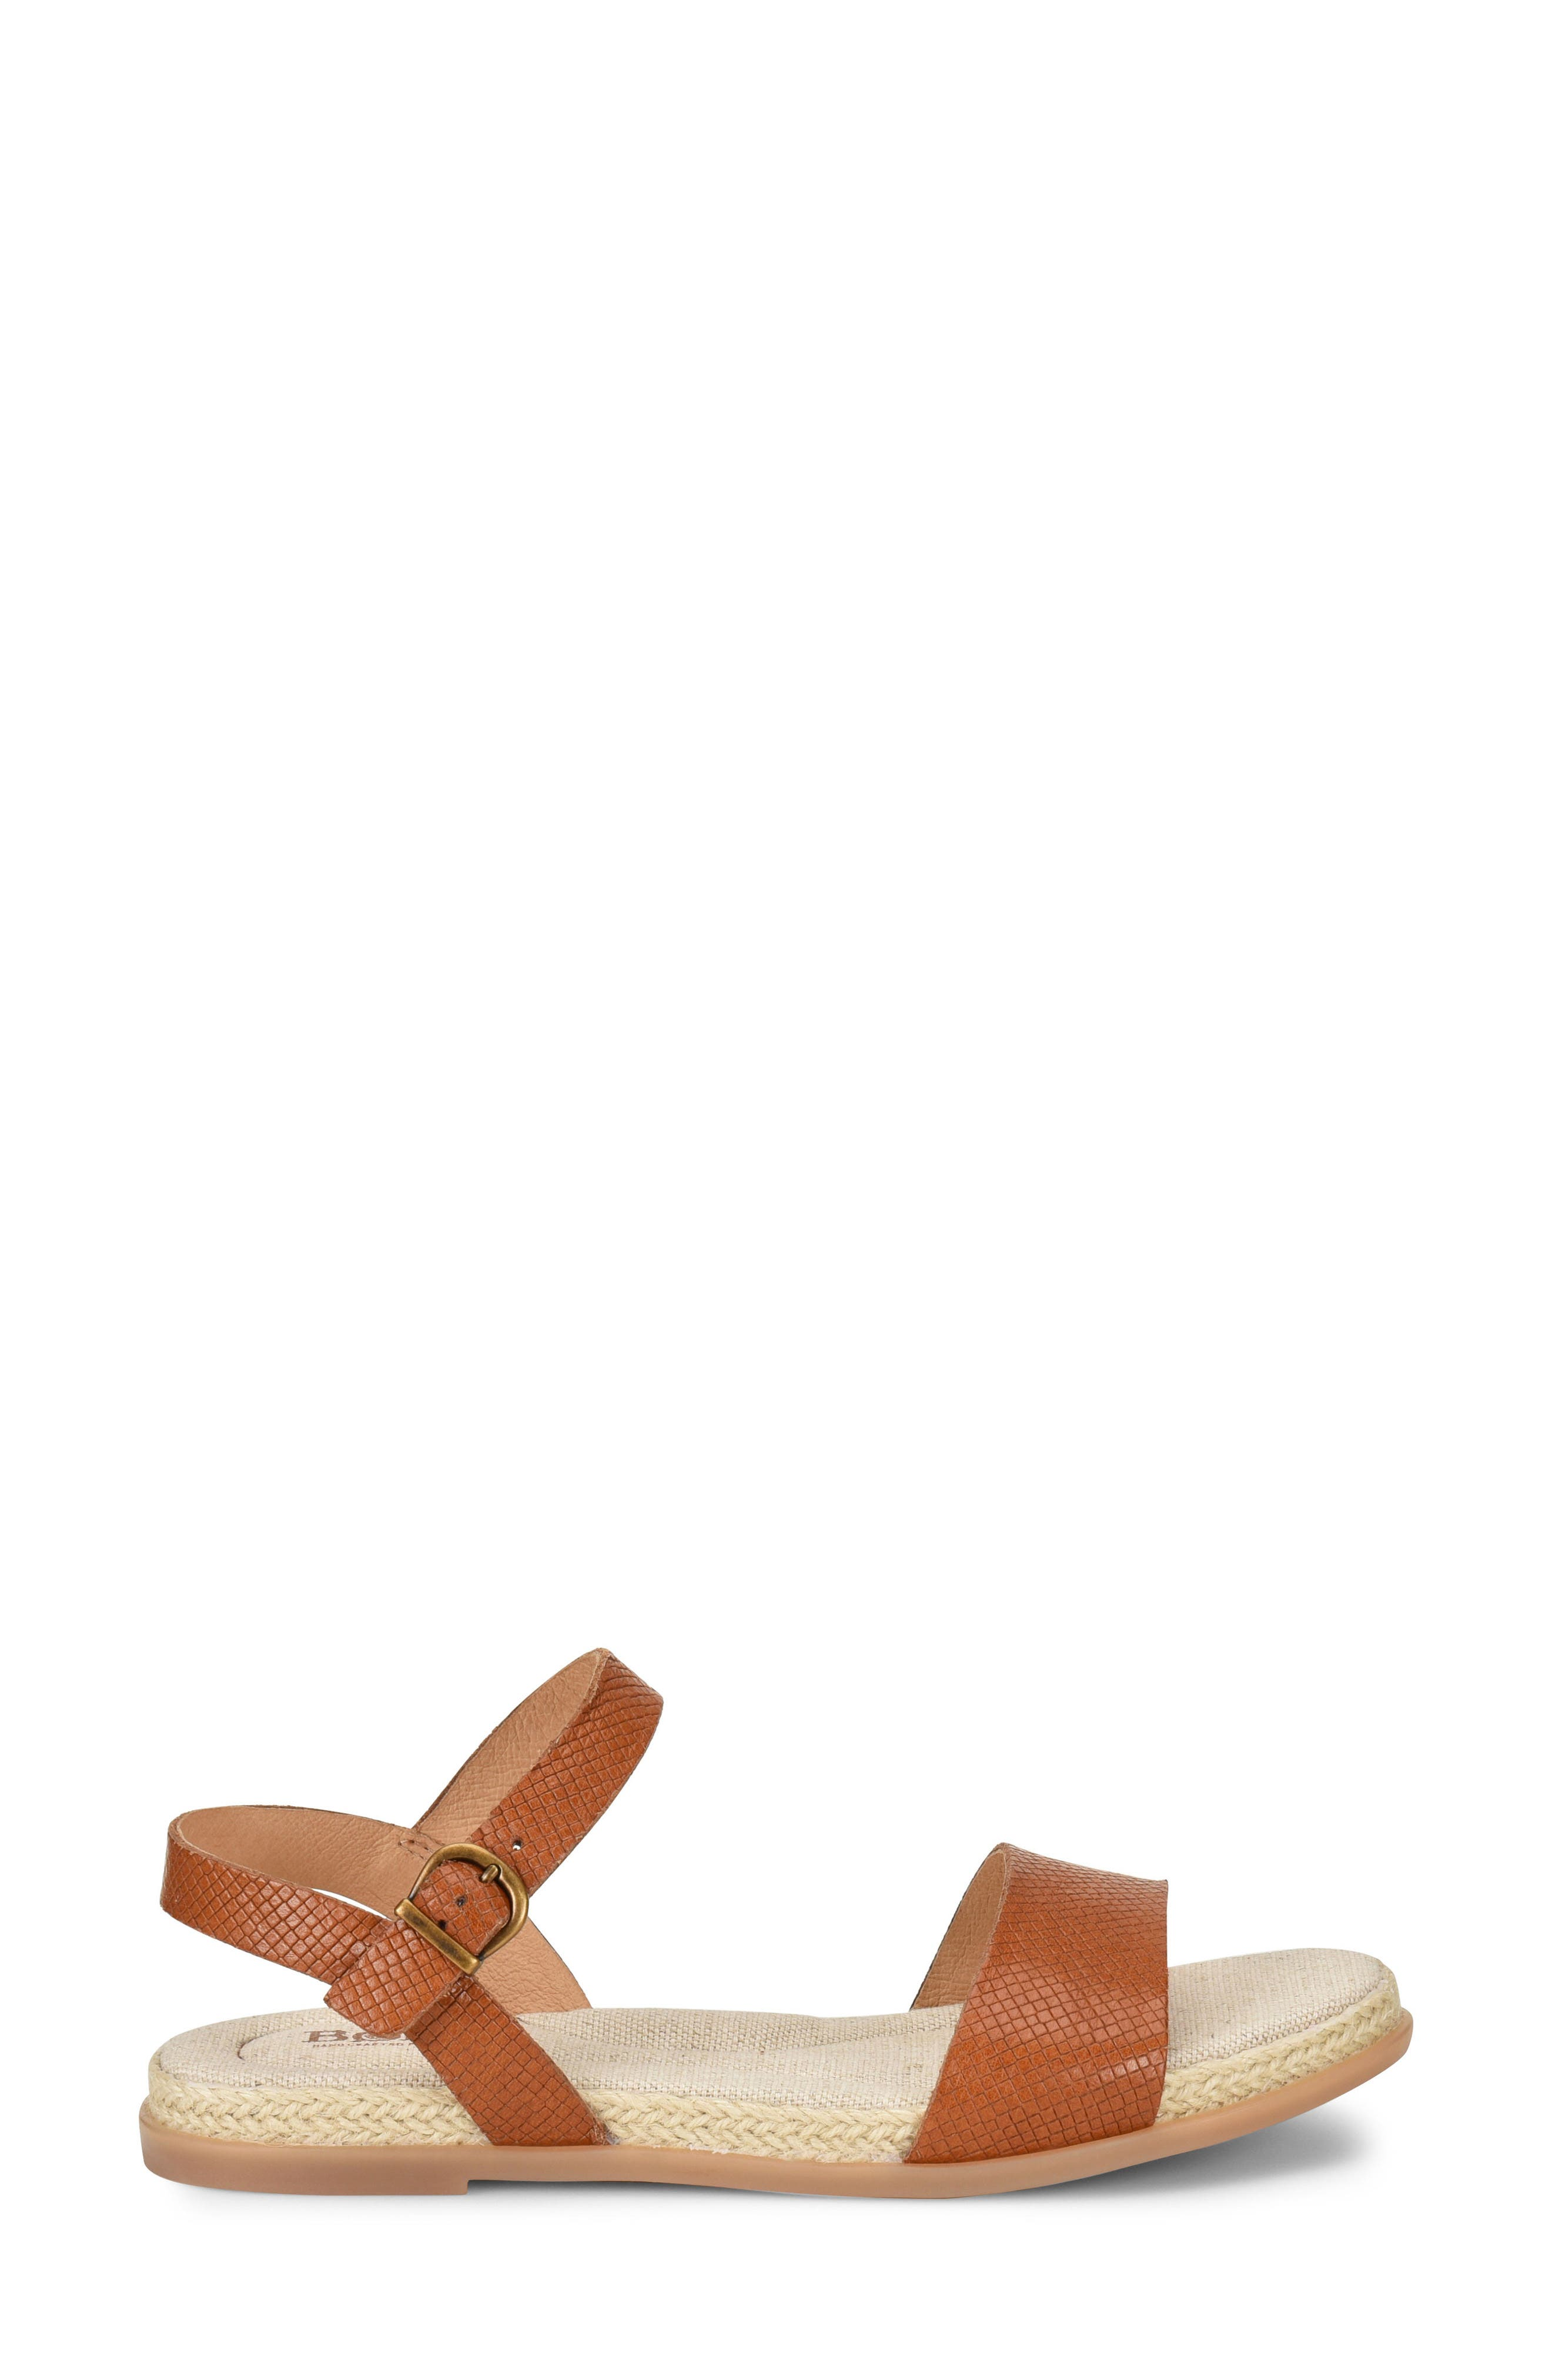 Welch Sandal,                             Alternate thumbnail 3, color,                             Brown Leather